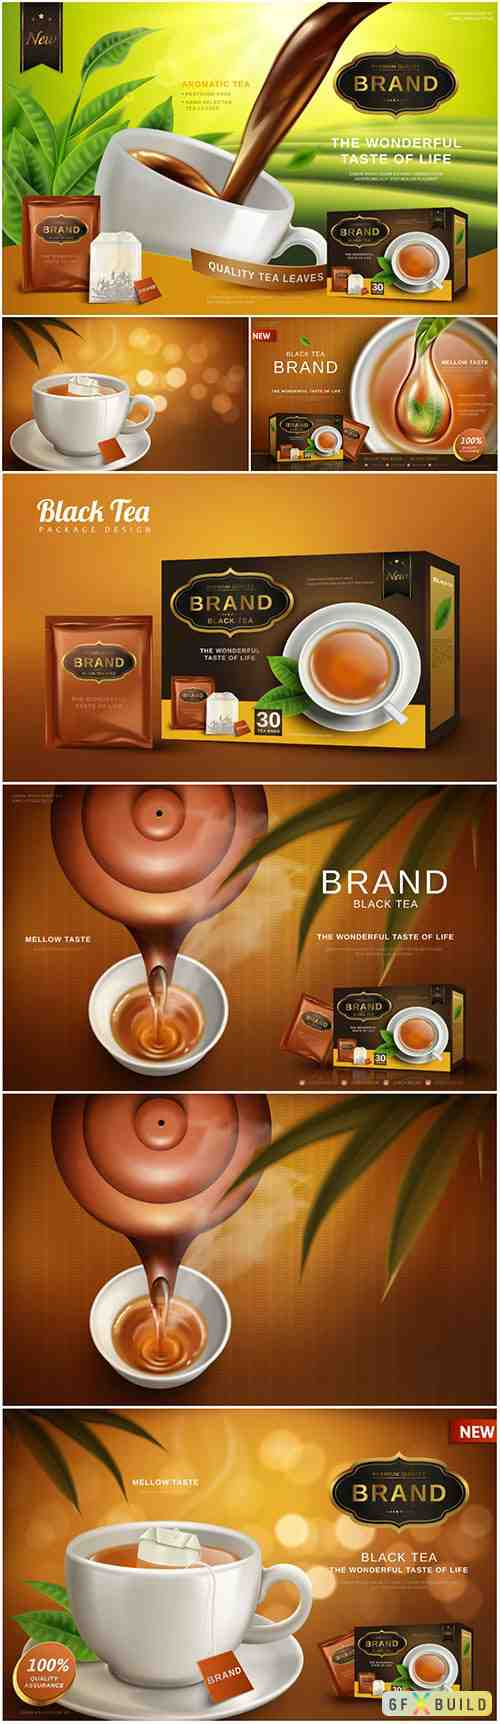 Black tea ad, with tea leaves and package box